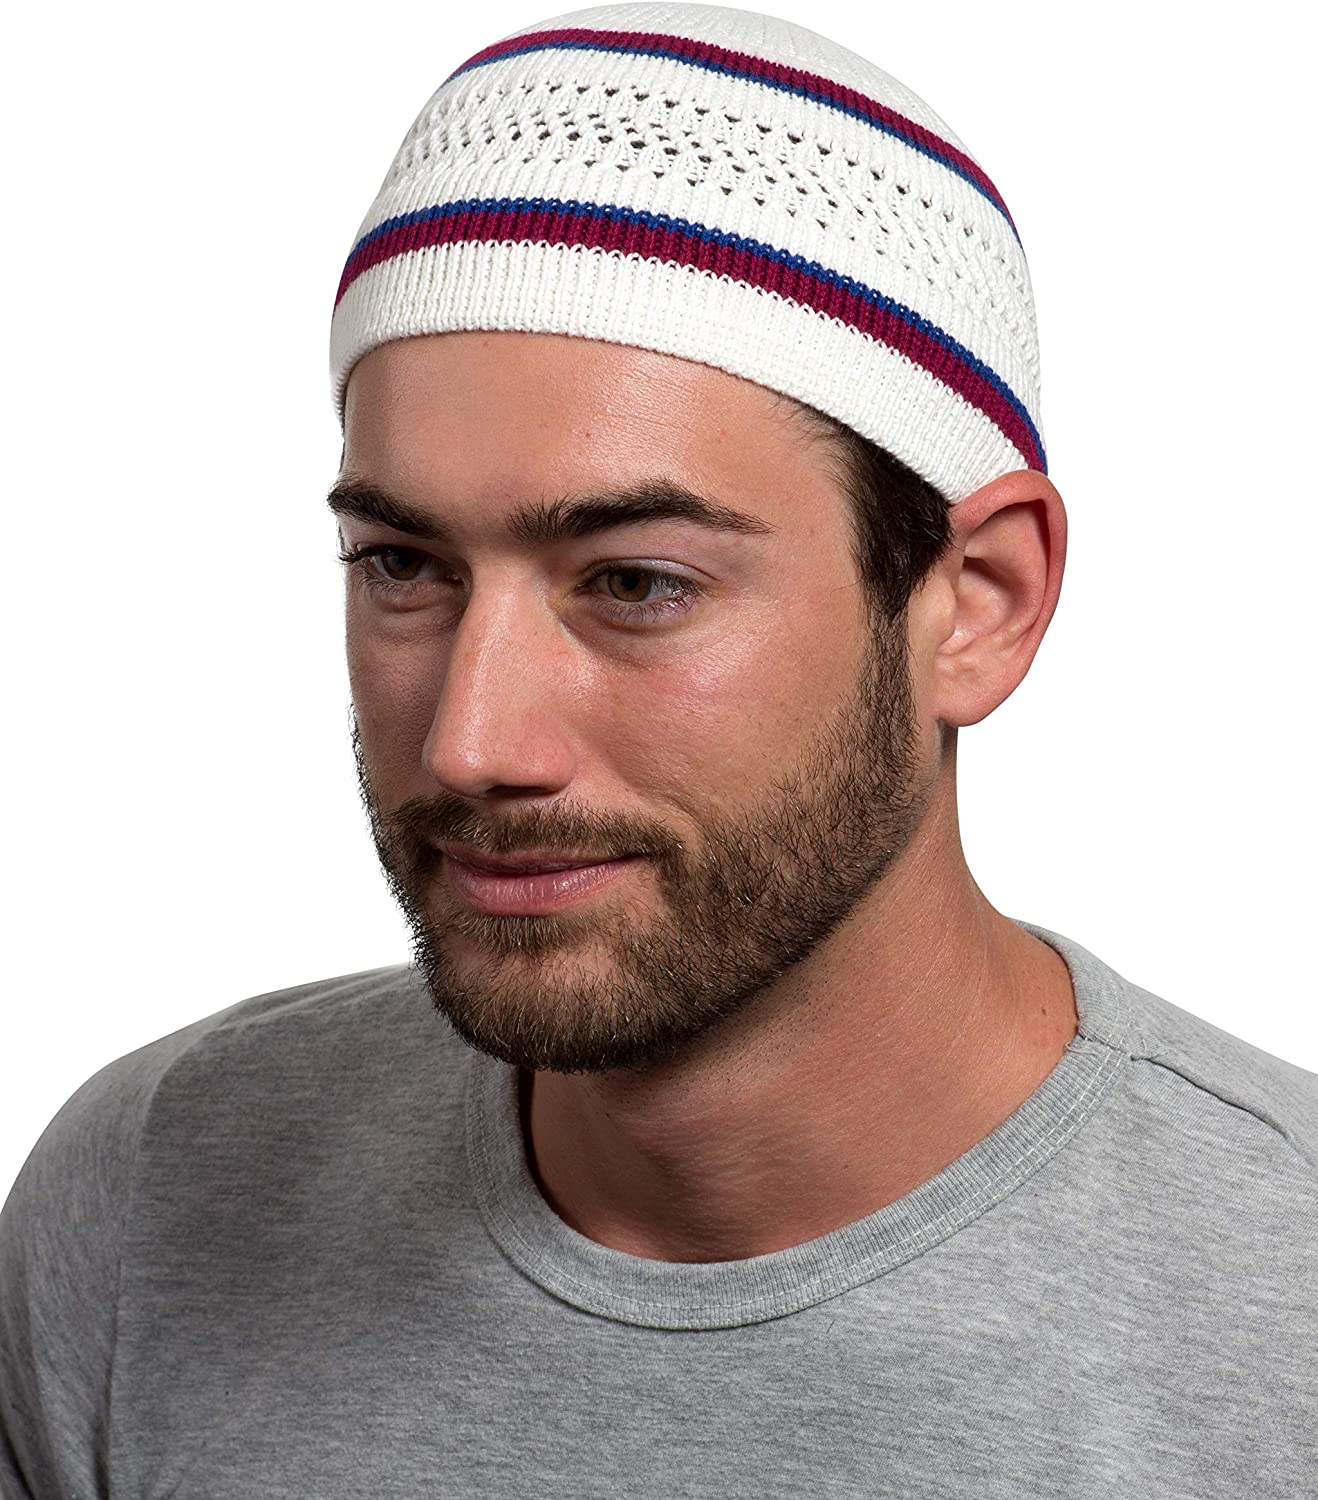 Muslim Bookmark Stretchy Elastic Beanie Kufi Skull Cap Hats Featuring Cool Designs and Stripes (Black w/Perforated Design) at  Men's Clothing store